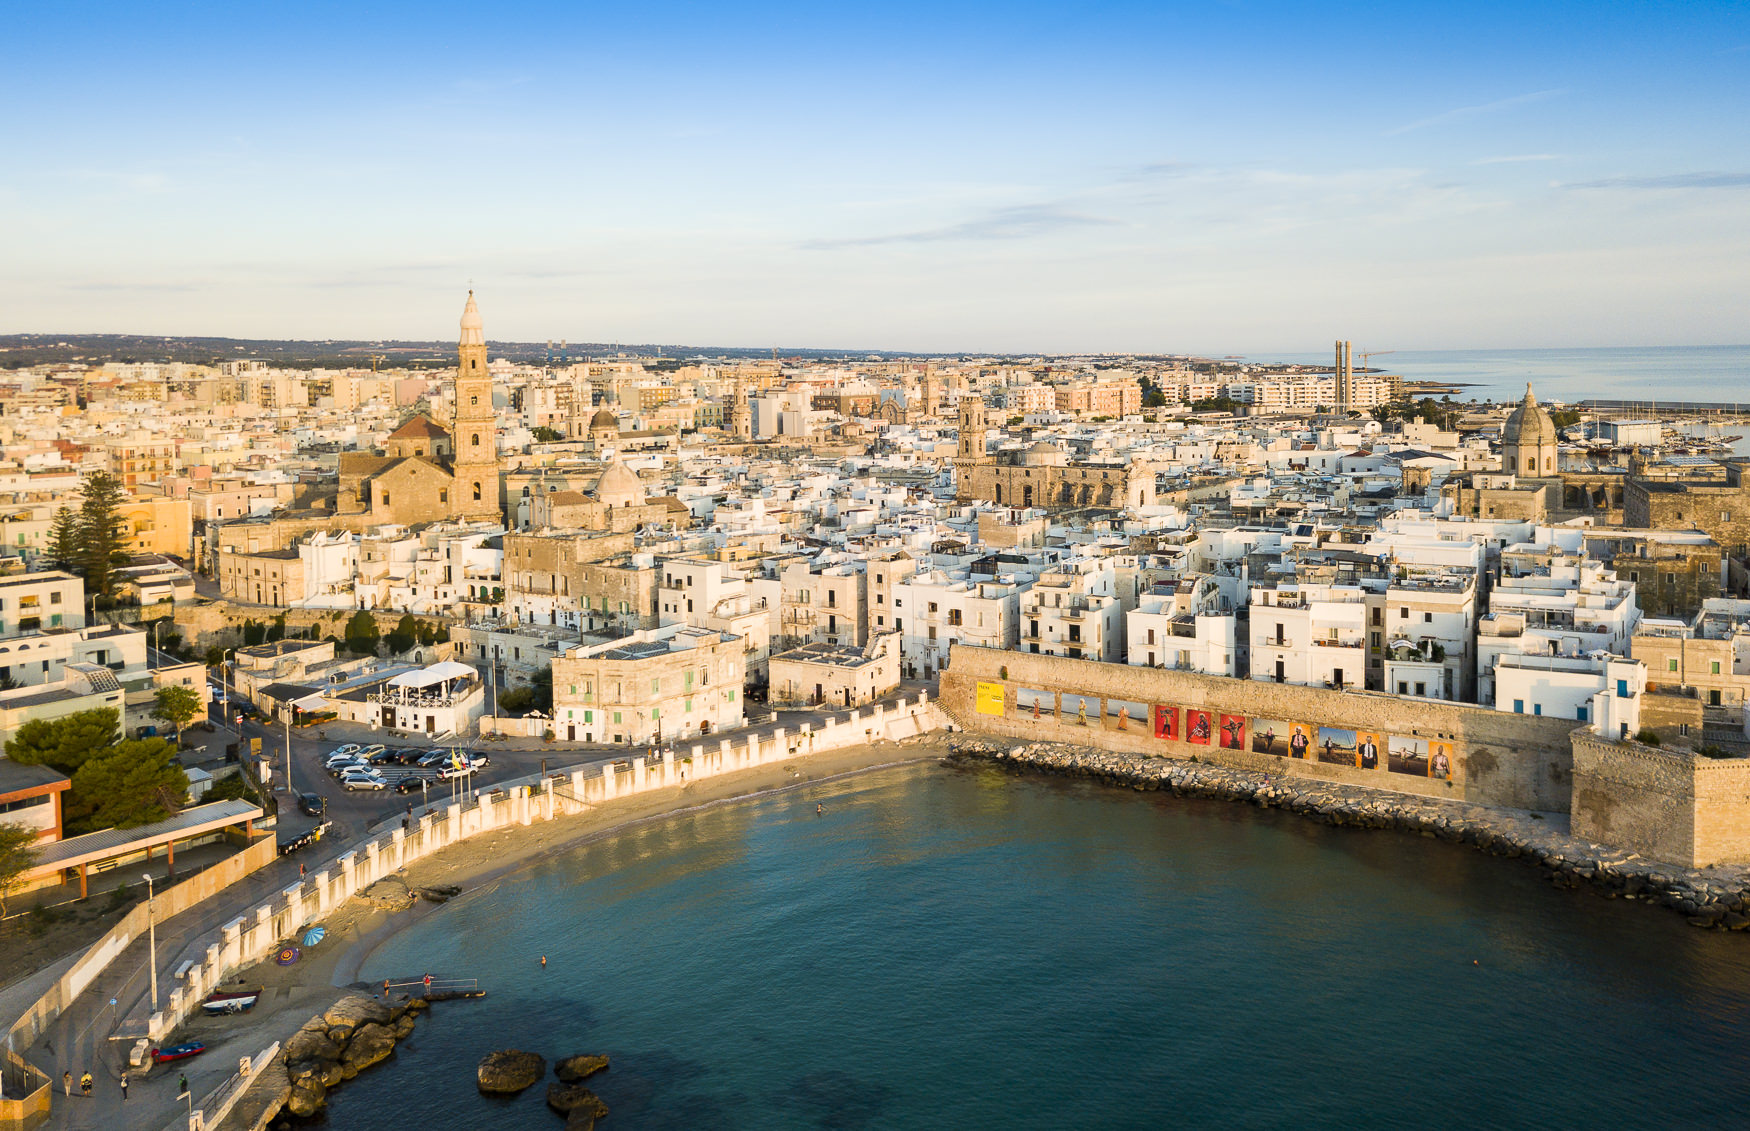 A 2017 shoot for Simpson Travel for their new Puglia programme. With the flat geography of the area, aerial shots were a particular brief requirement.